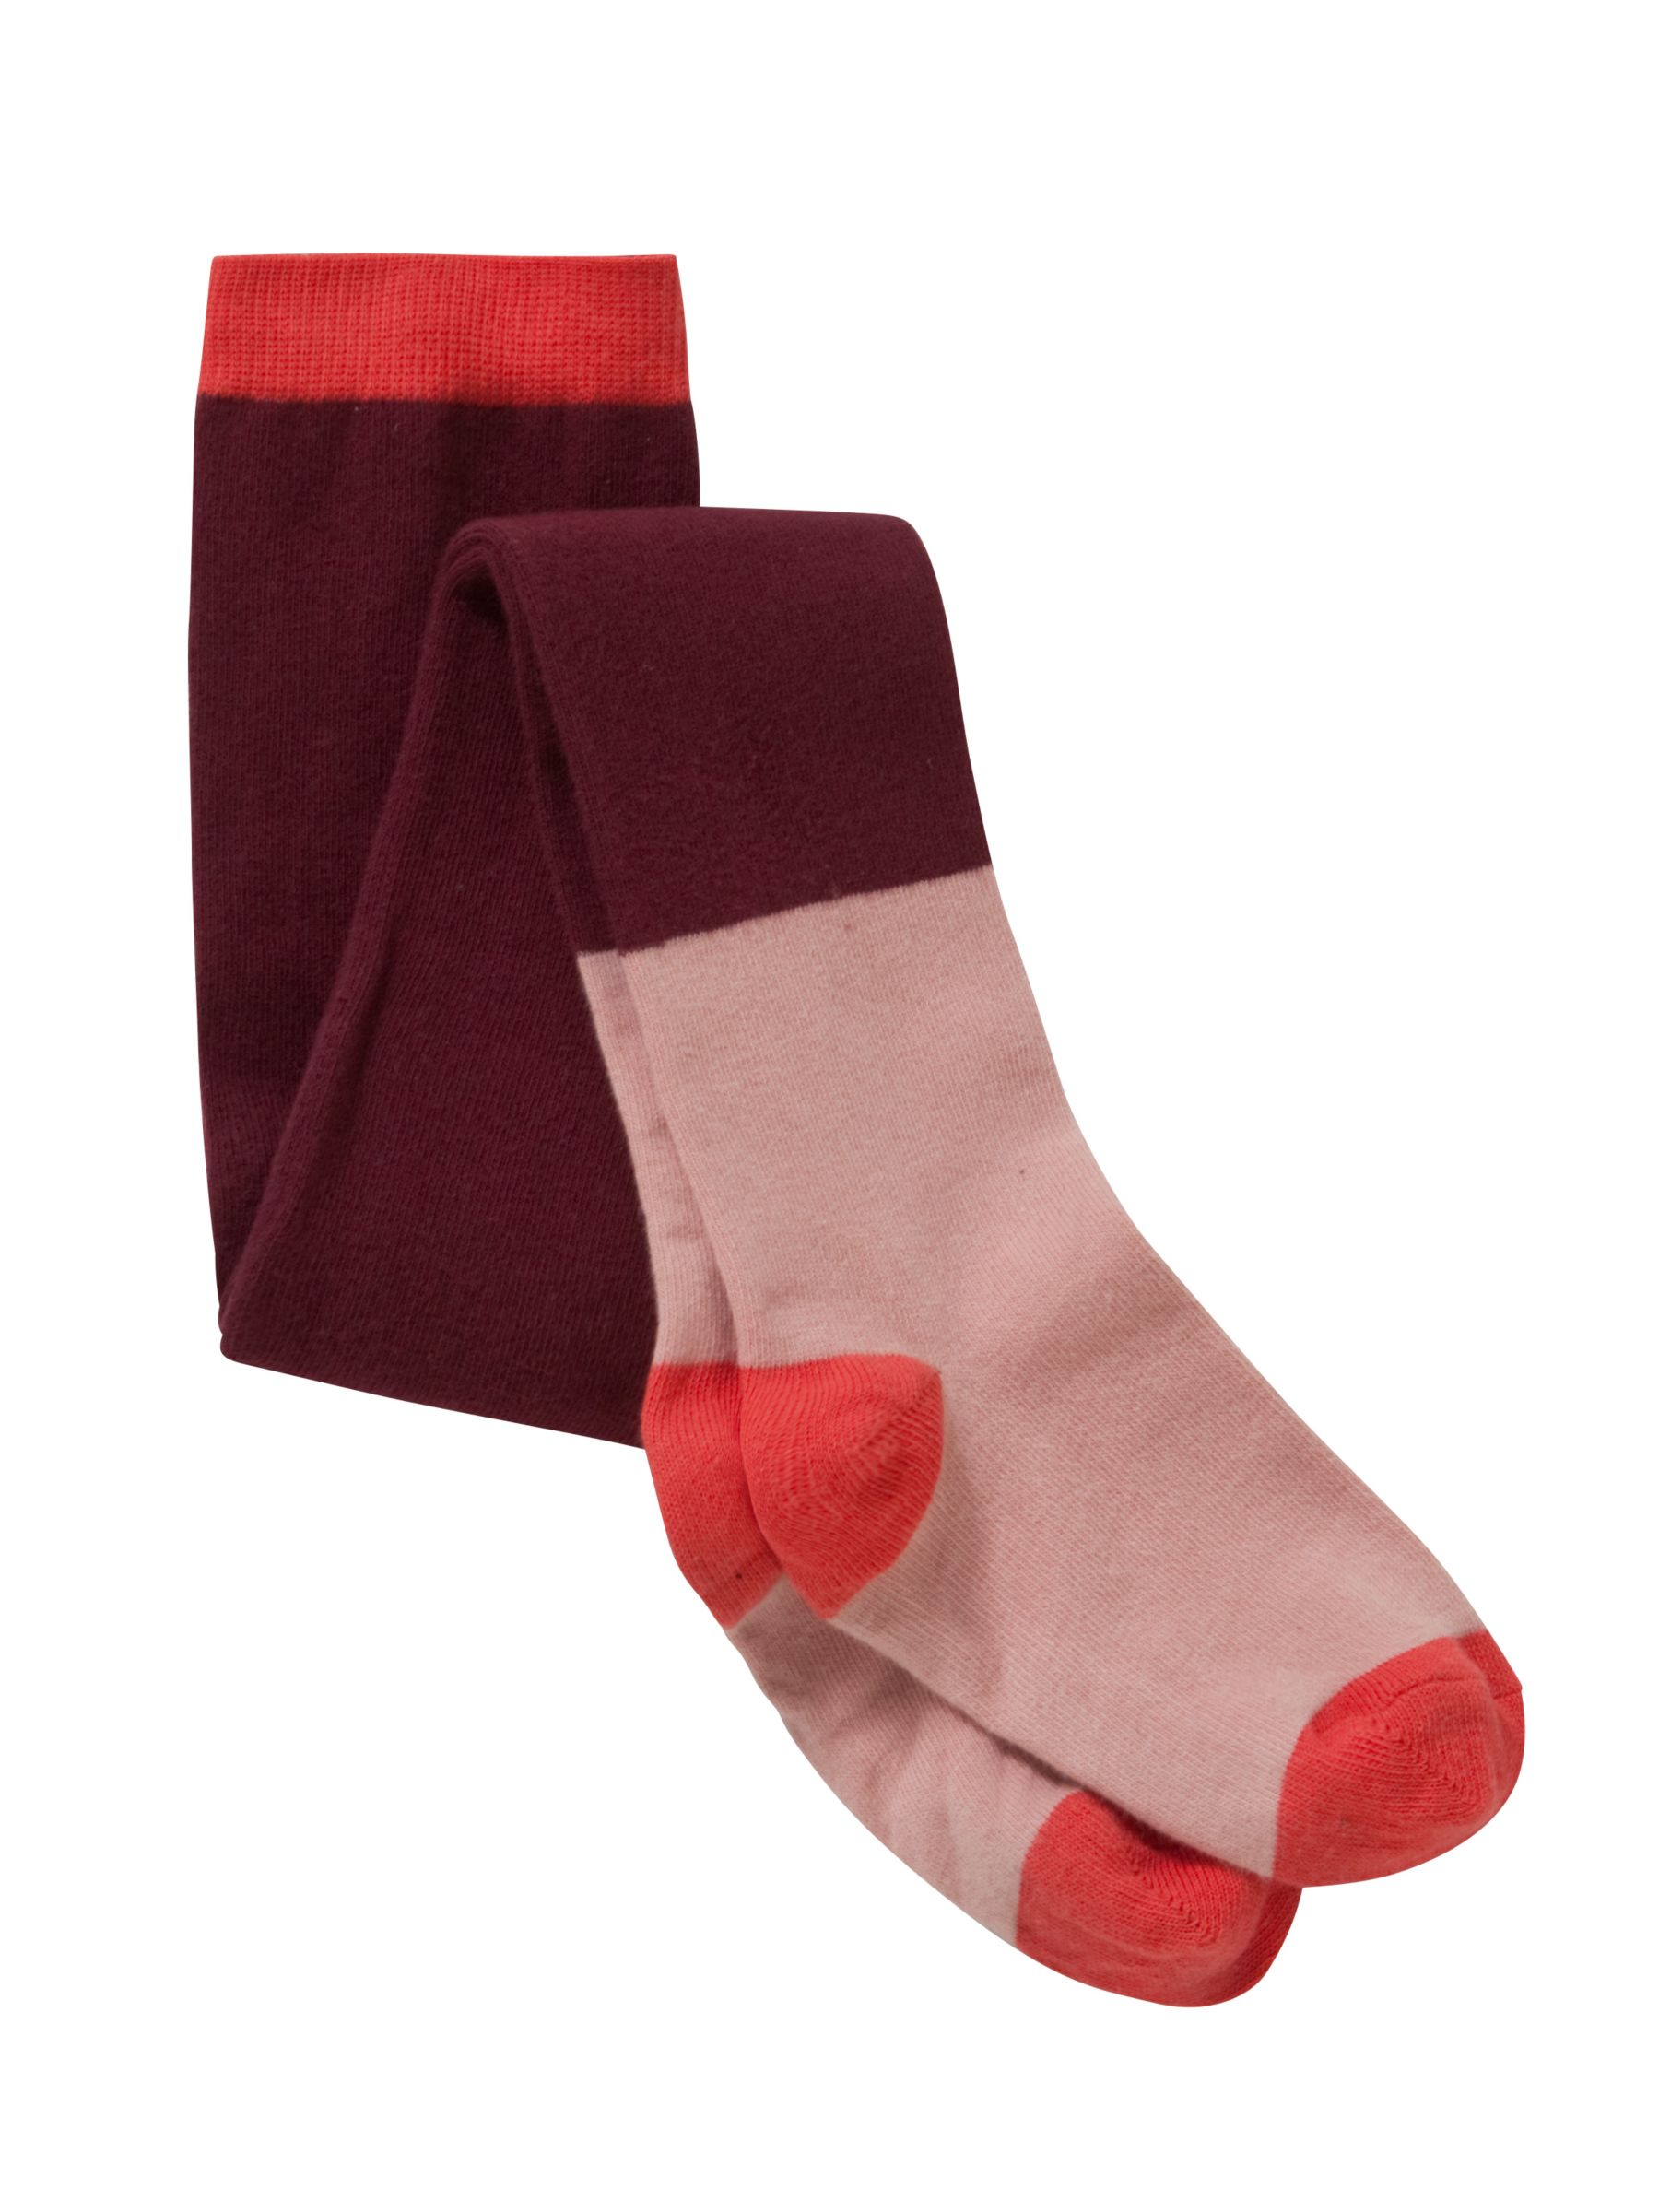 Donna Wilson for John Lewis Girls' Tights, Burgundy